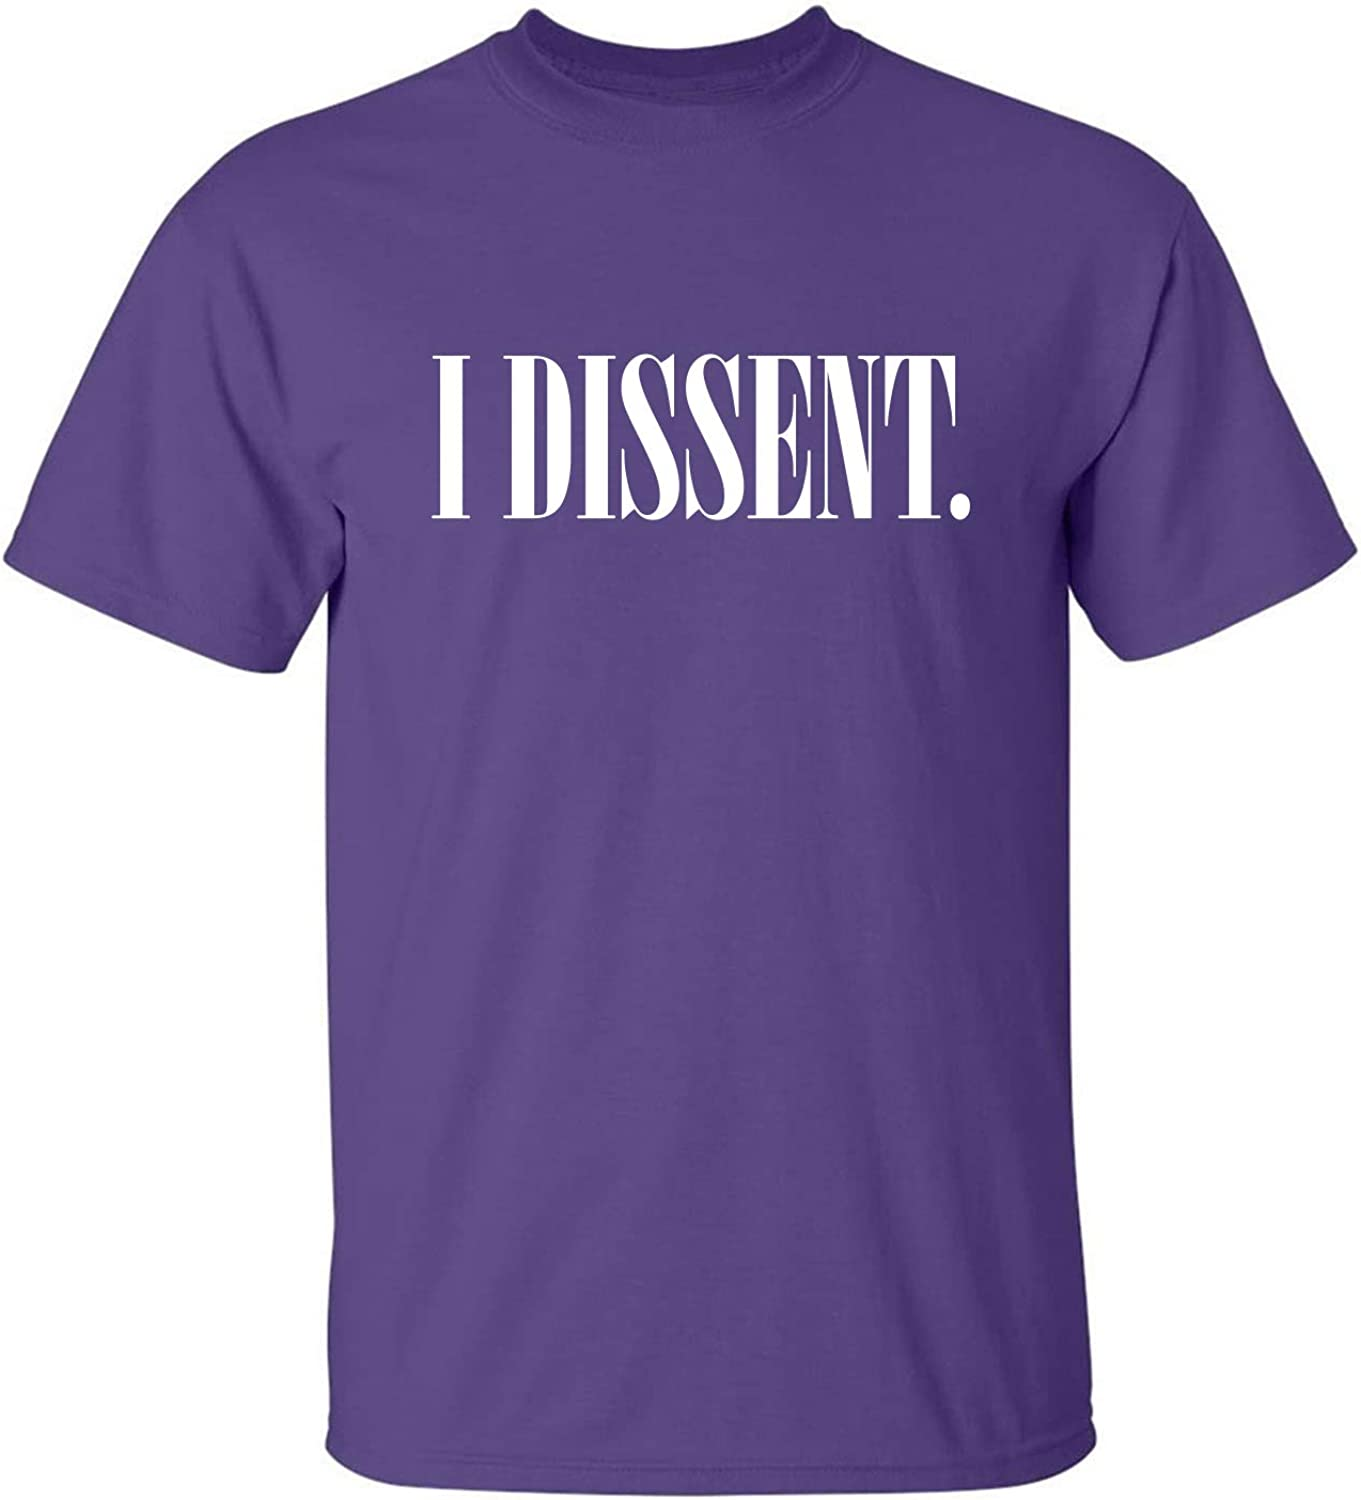 I Dissent Adult T-Shirt in Purple - XXXX-Large